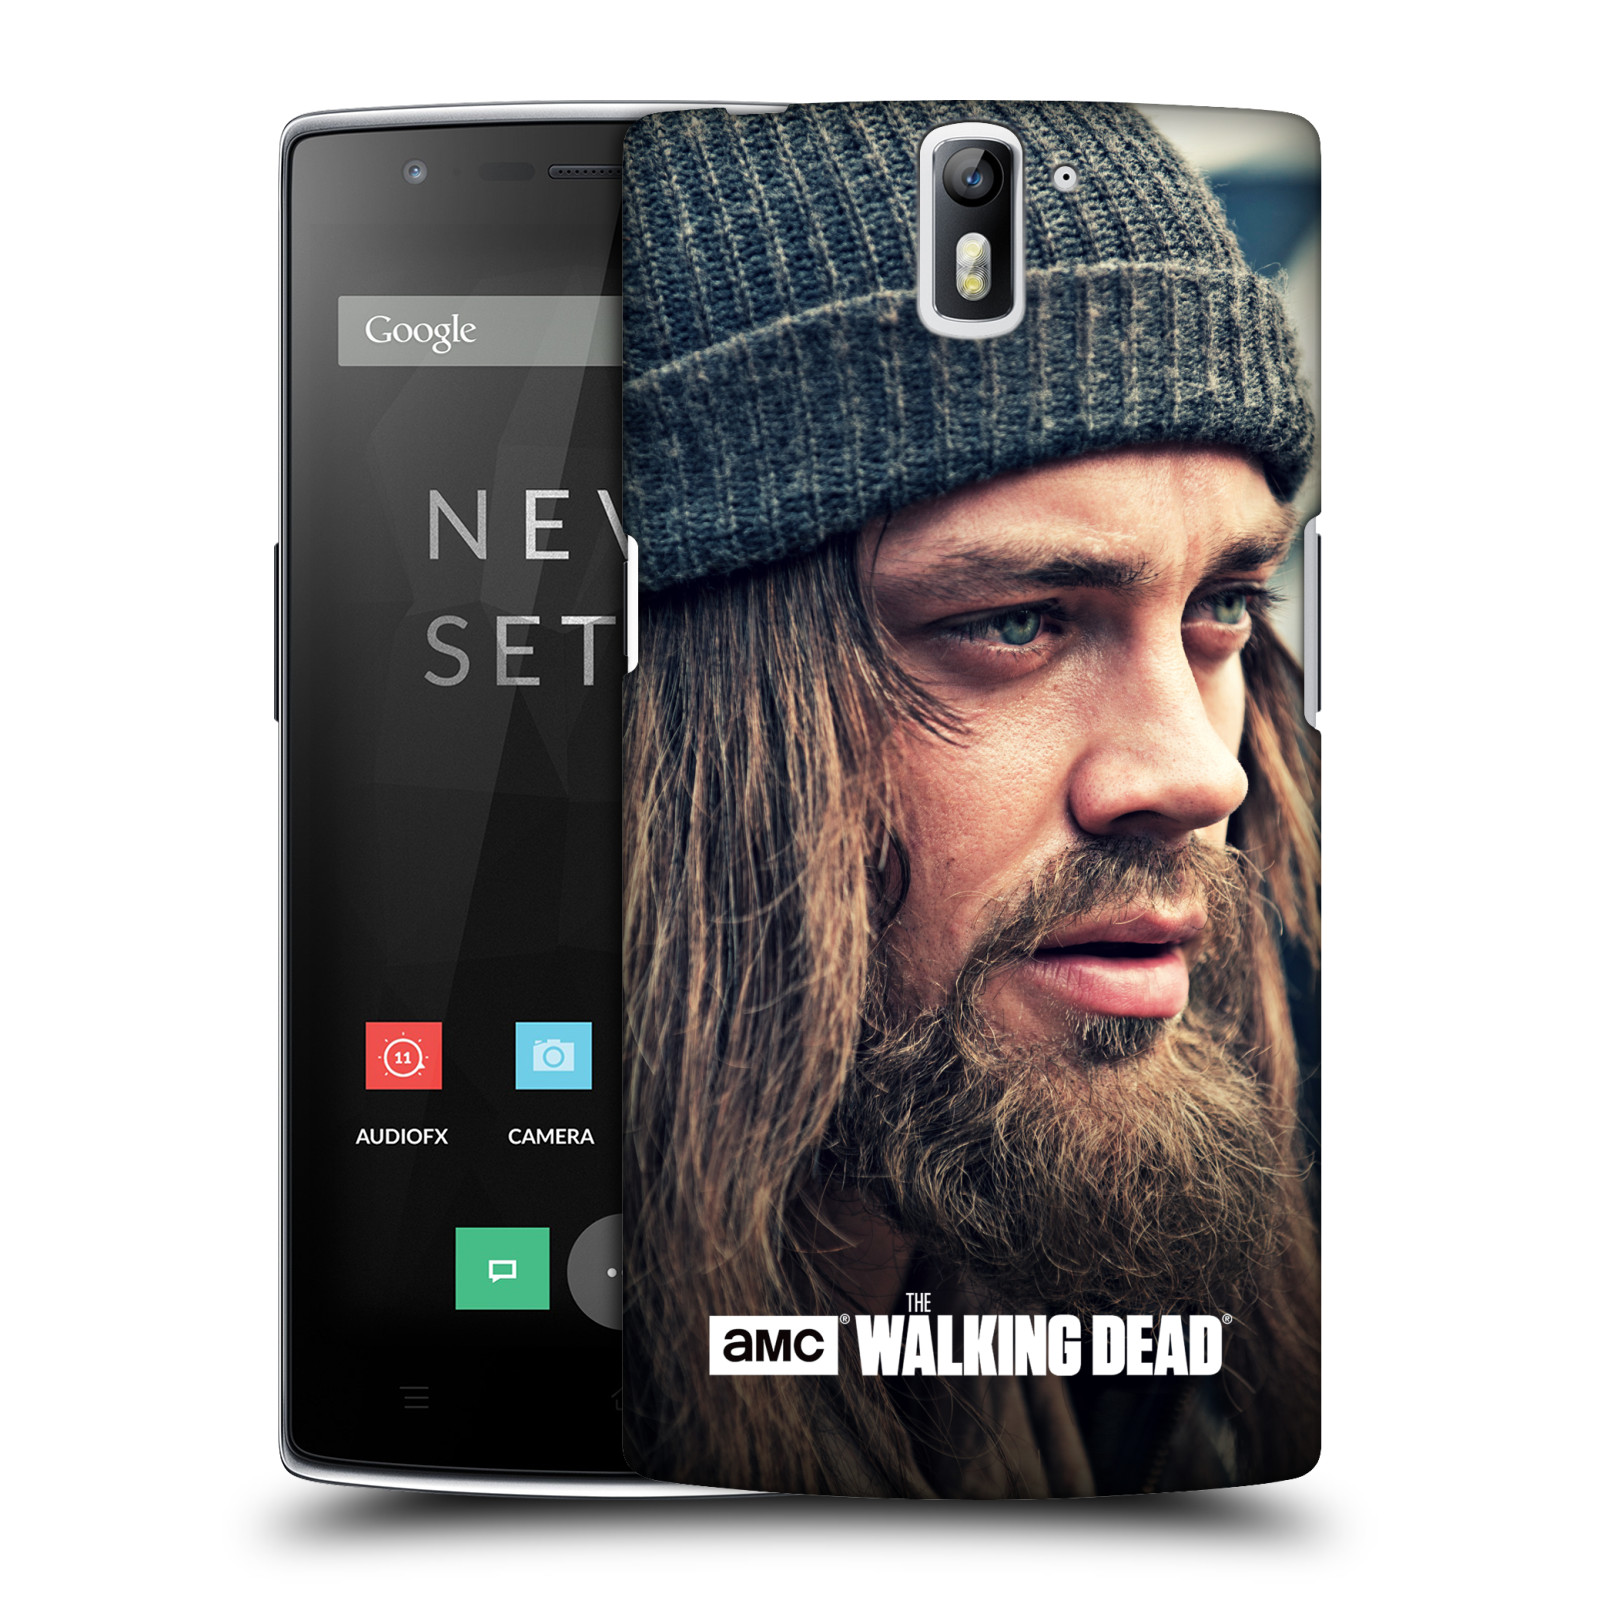 OFFICIAL AMC THE WALKING DEAD JESUS HARD BACK CASE FOR ONEPLUS ASUS AMAZON